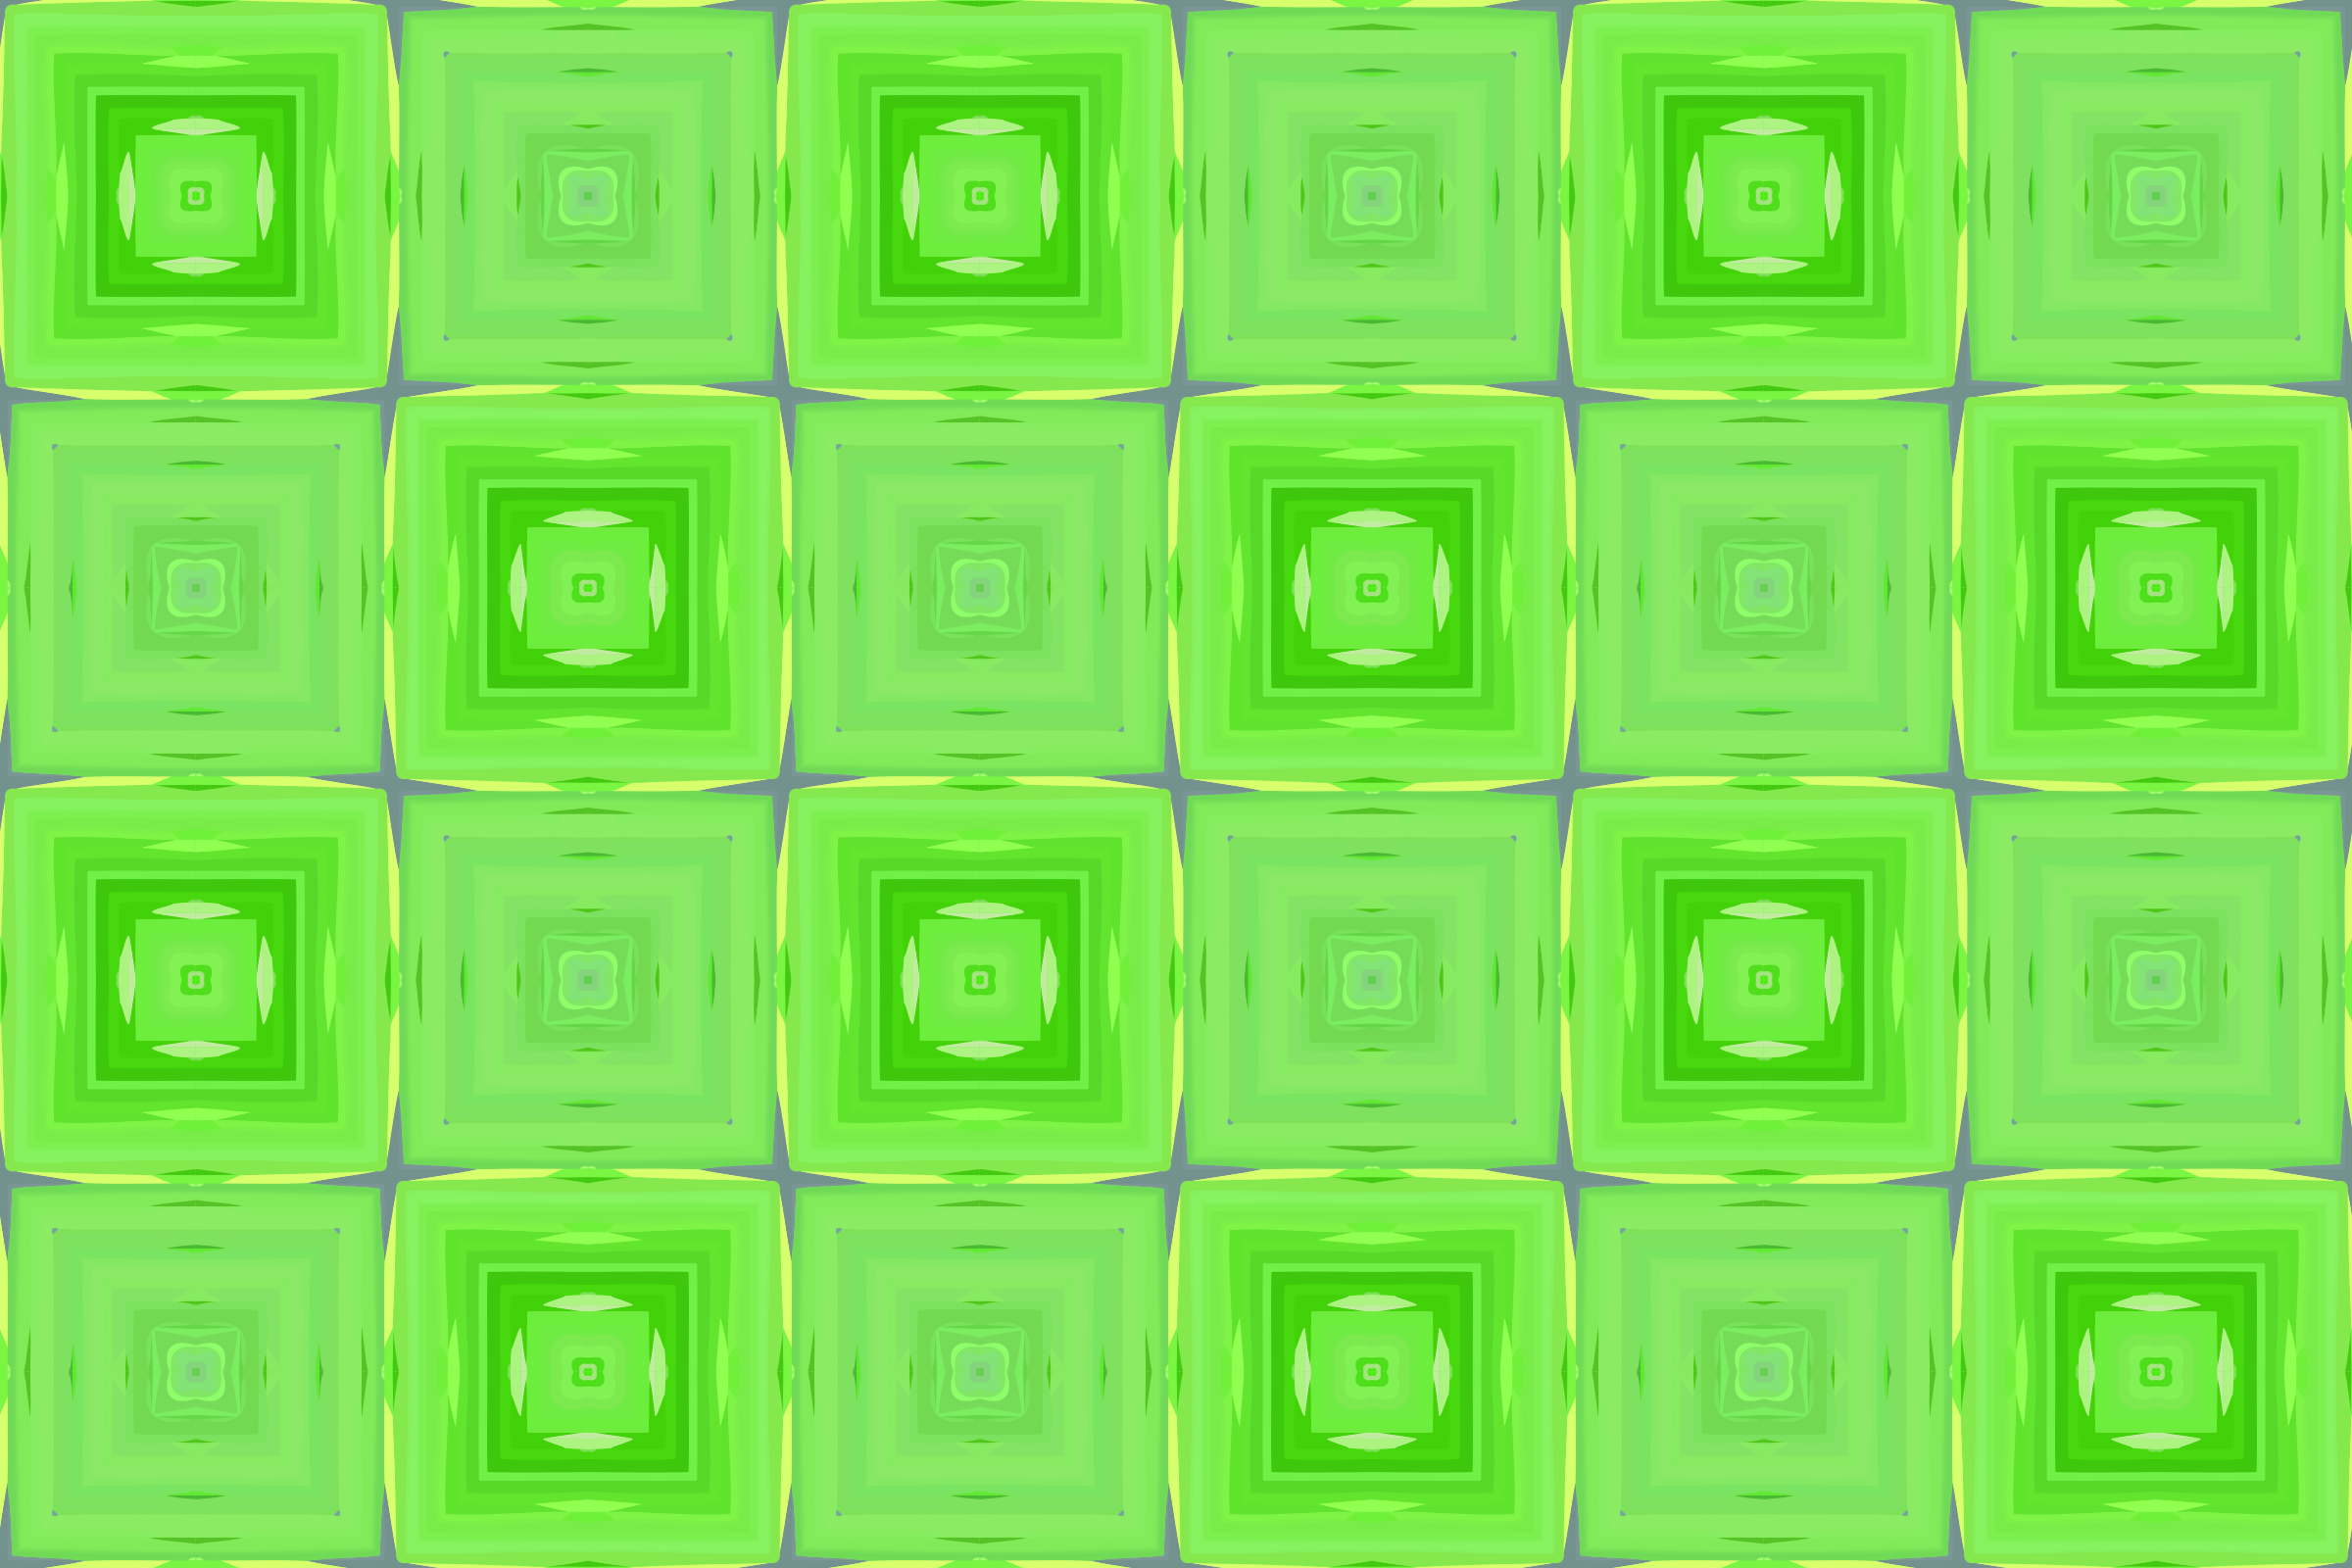 Green background clipart #13